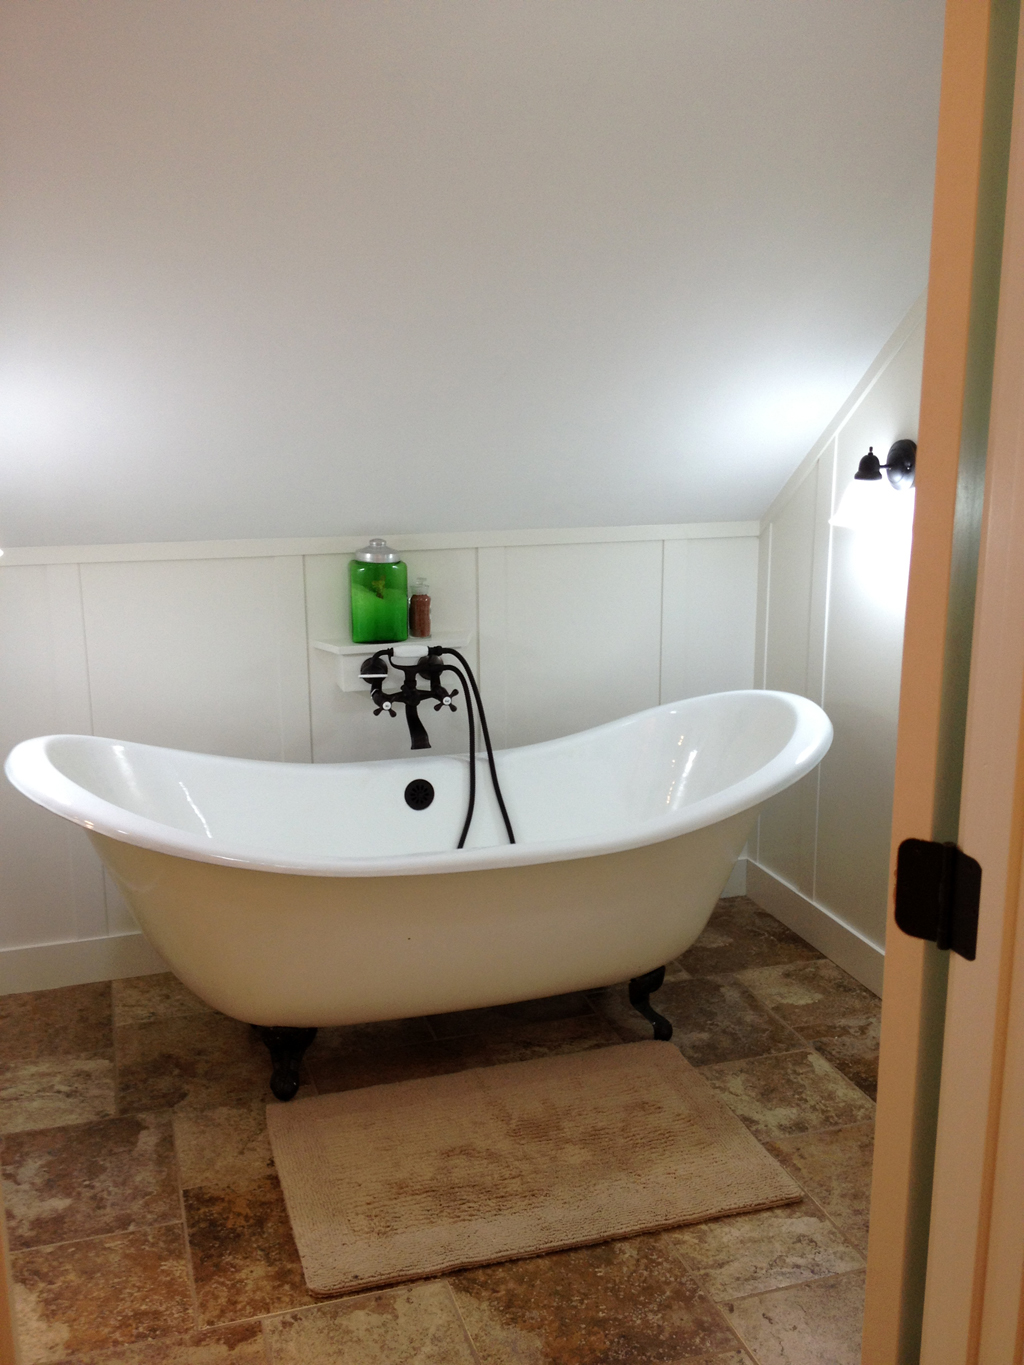 lovely bathroom unique oval clawfoot tub with black shower faucet on tan floor matched with white